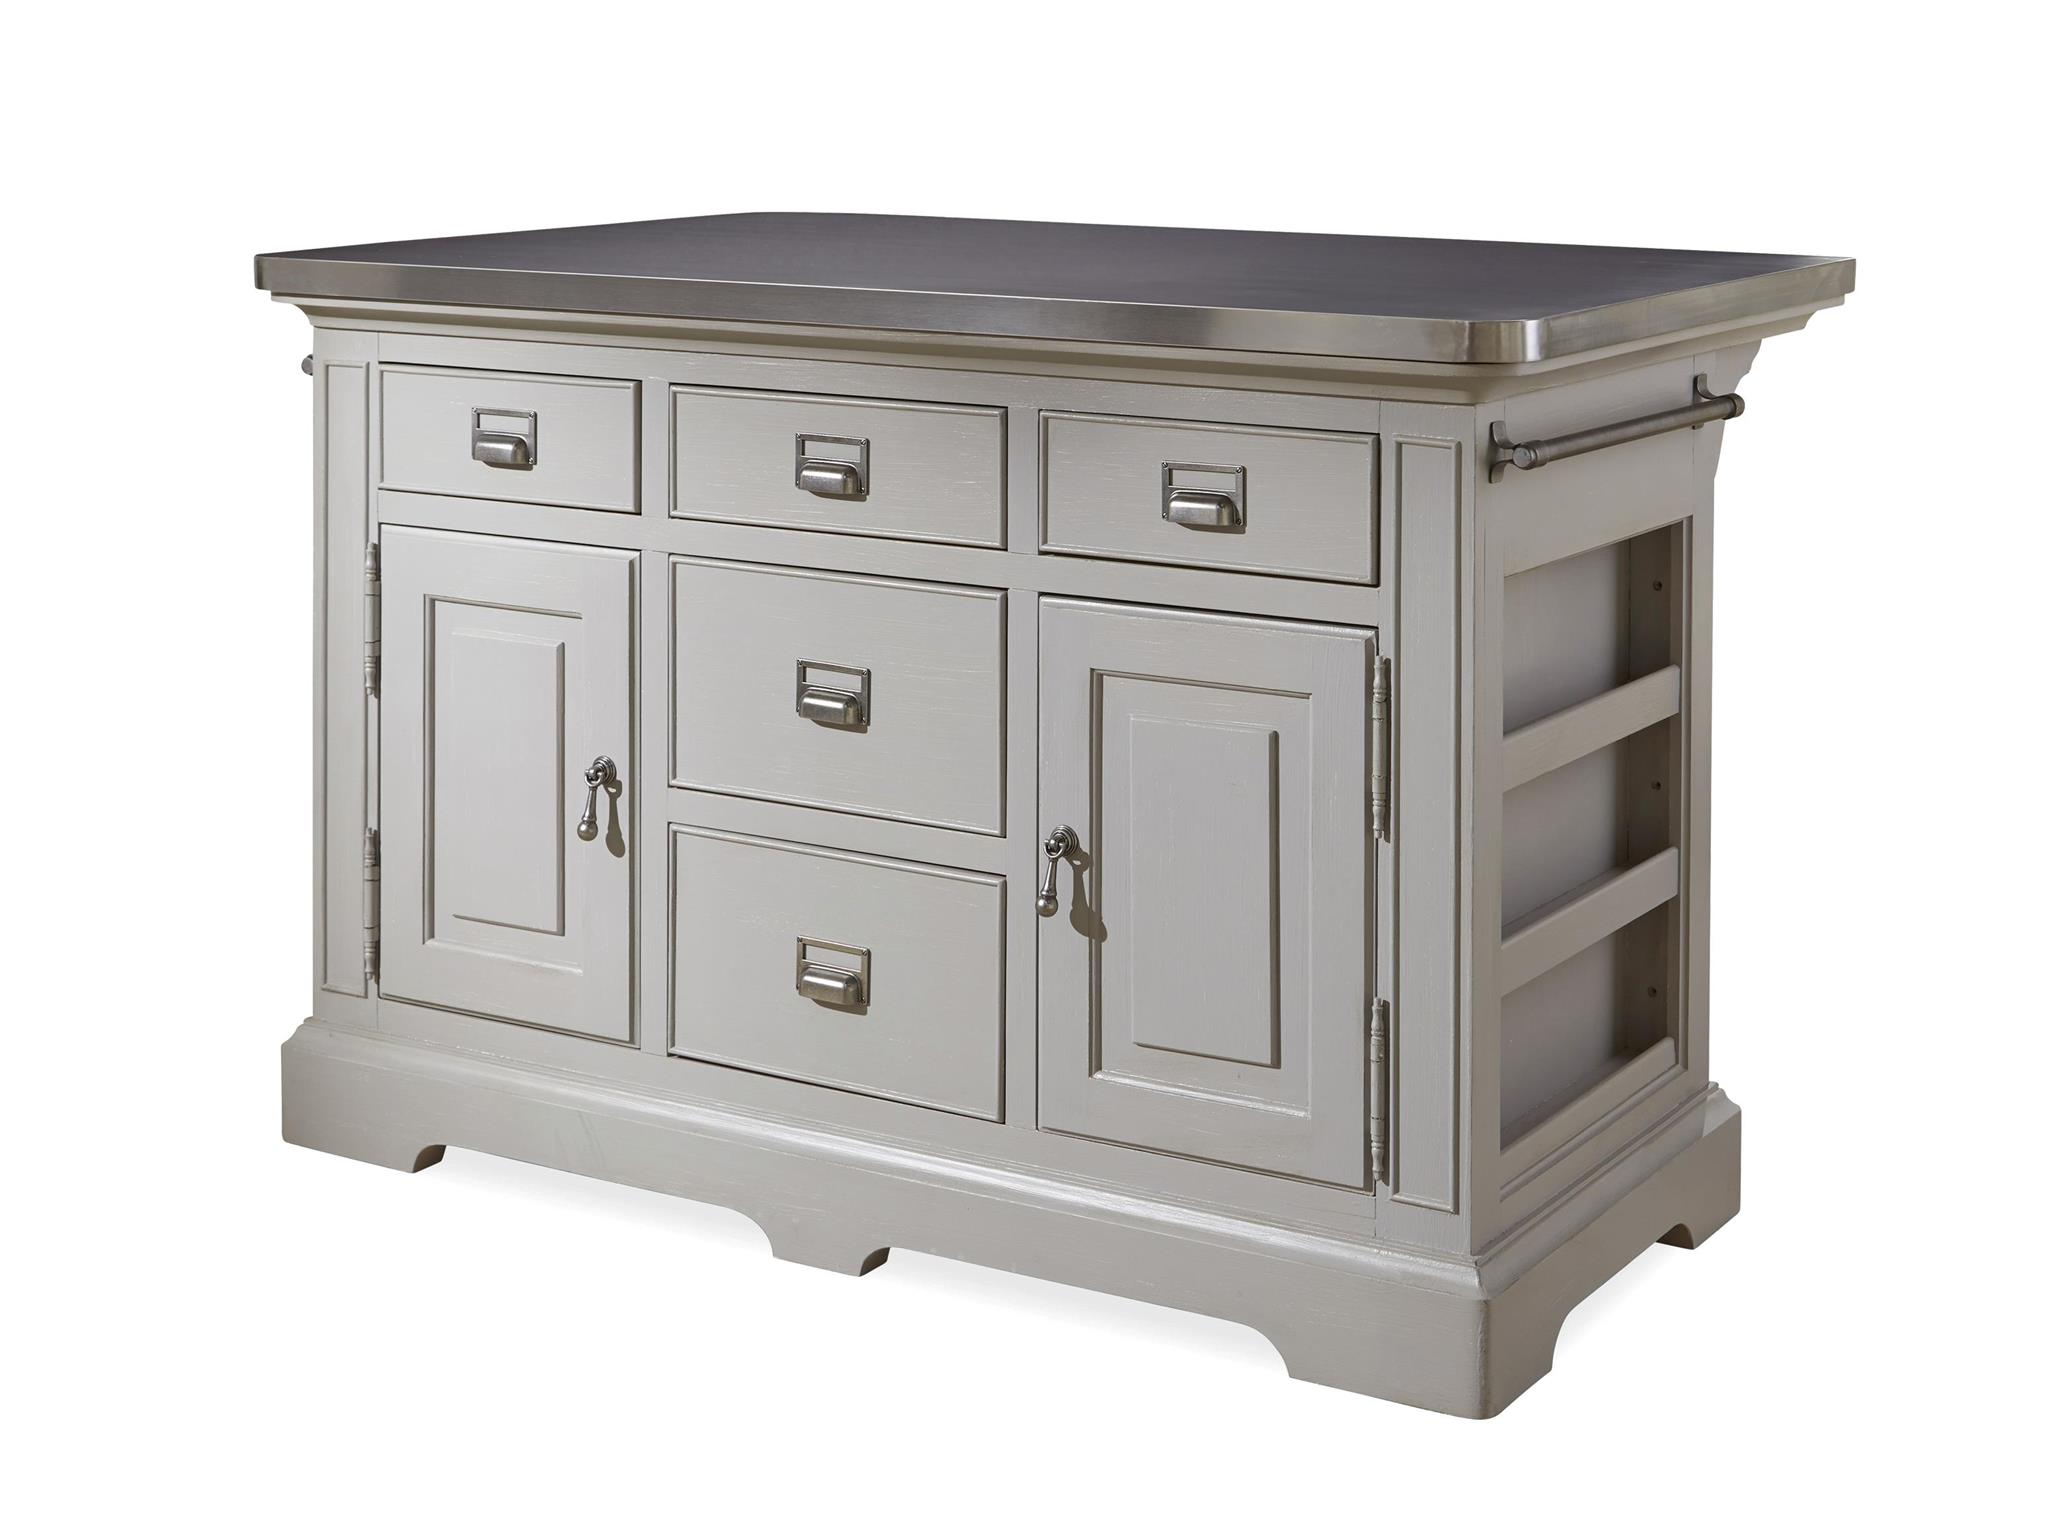 Universal Furniture Dogwood Paula Deen Home